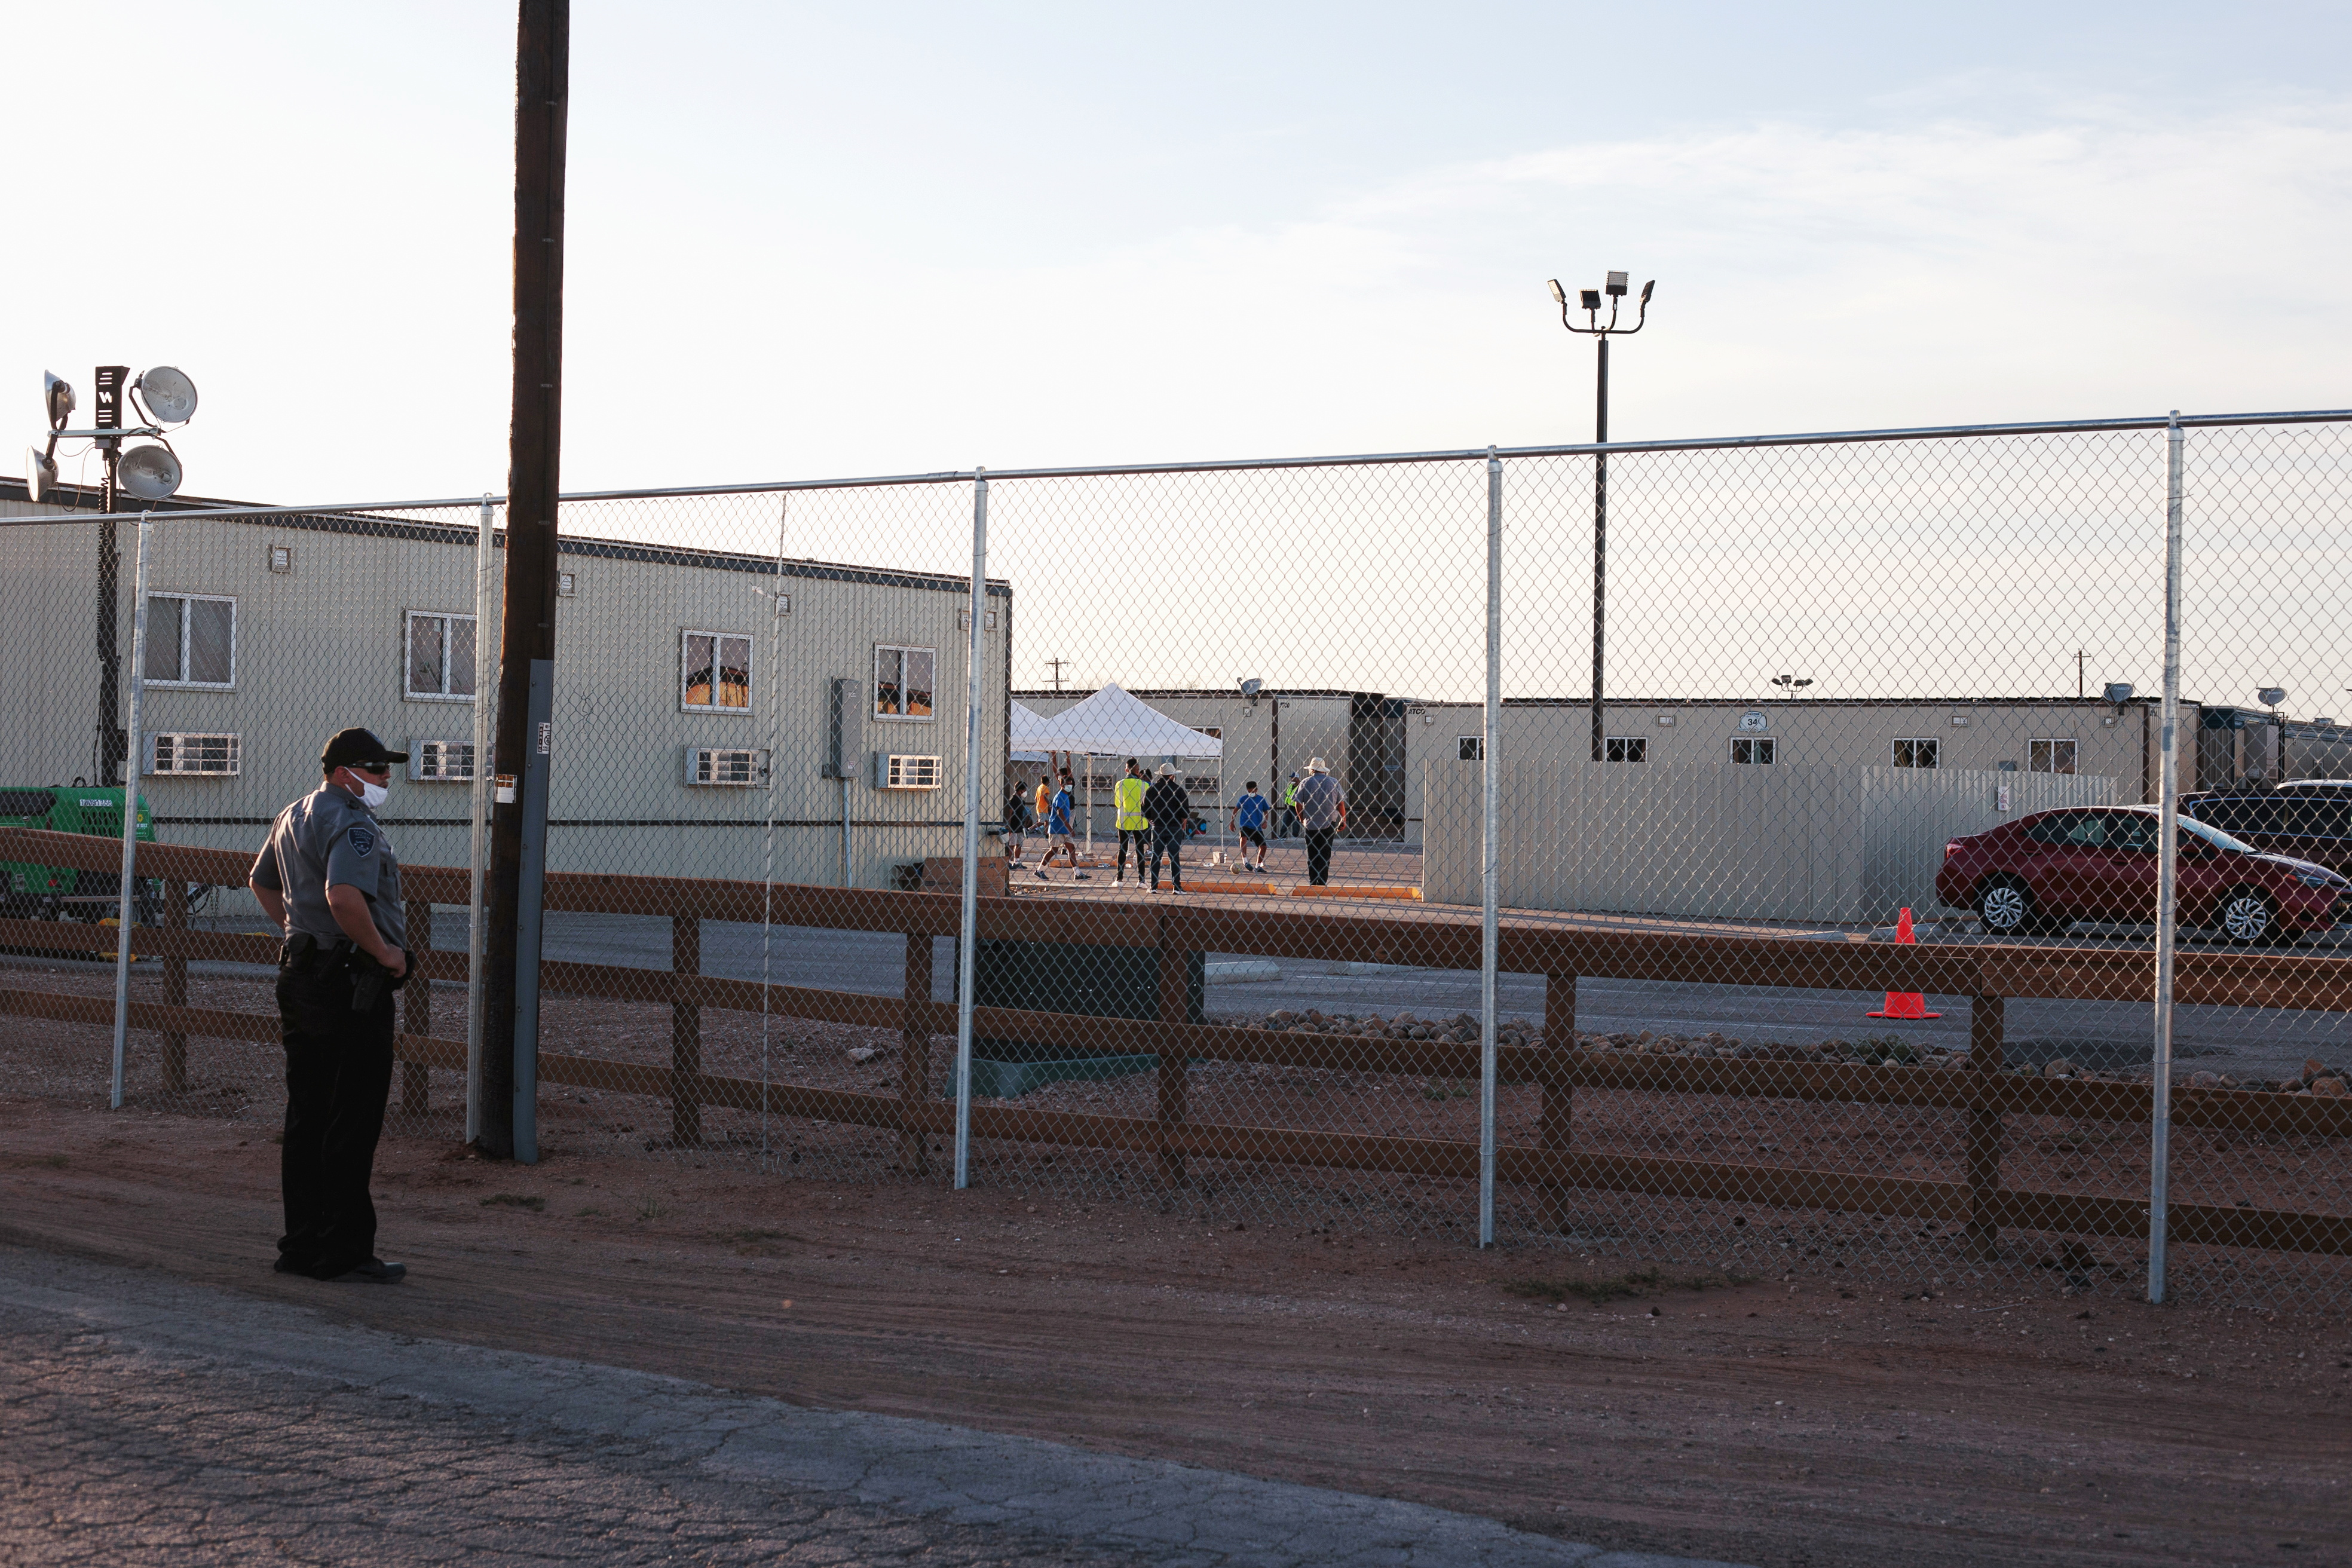 A security guard is seen at the site of a former oil field workers camp which is being used as a temporary housing facility for migrant children in Midland County, Texas, U.S. April 8, 2021.  REUTERS/Paul Ratje